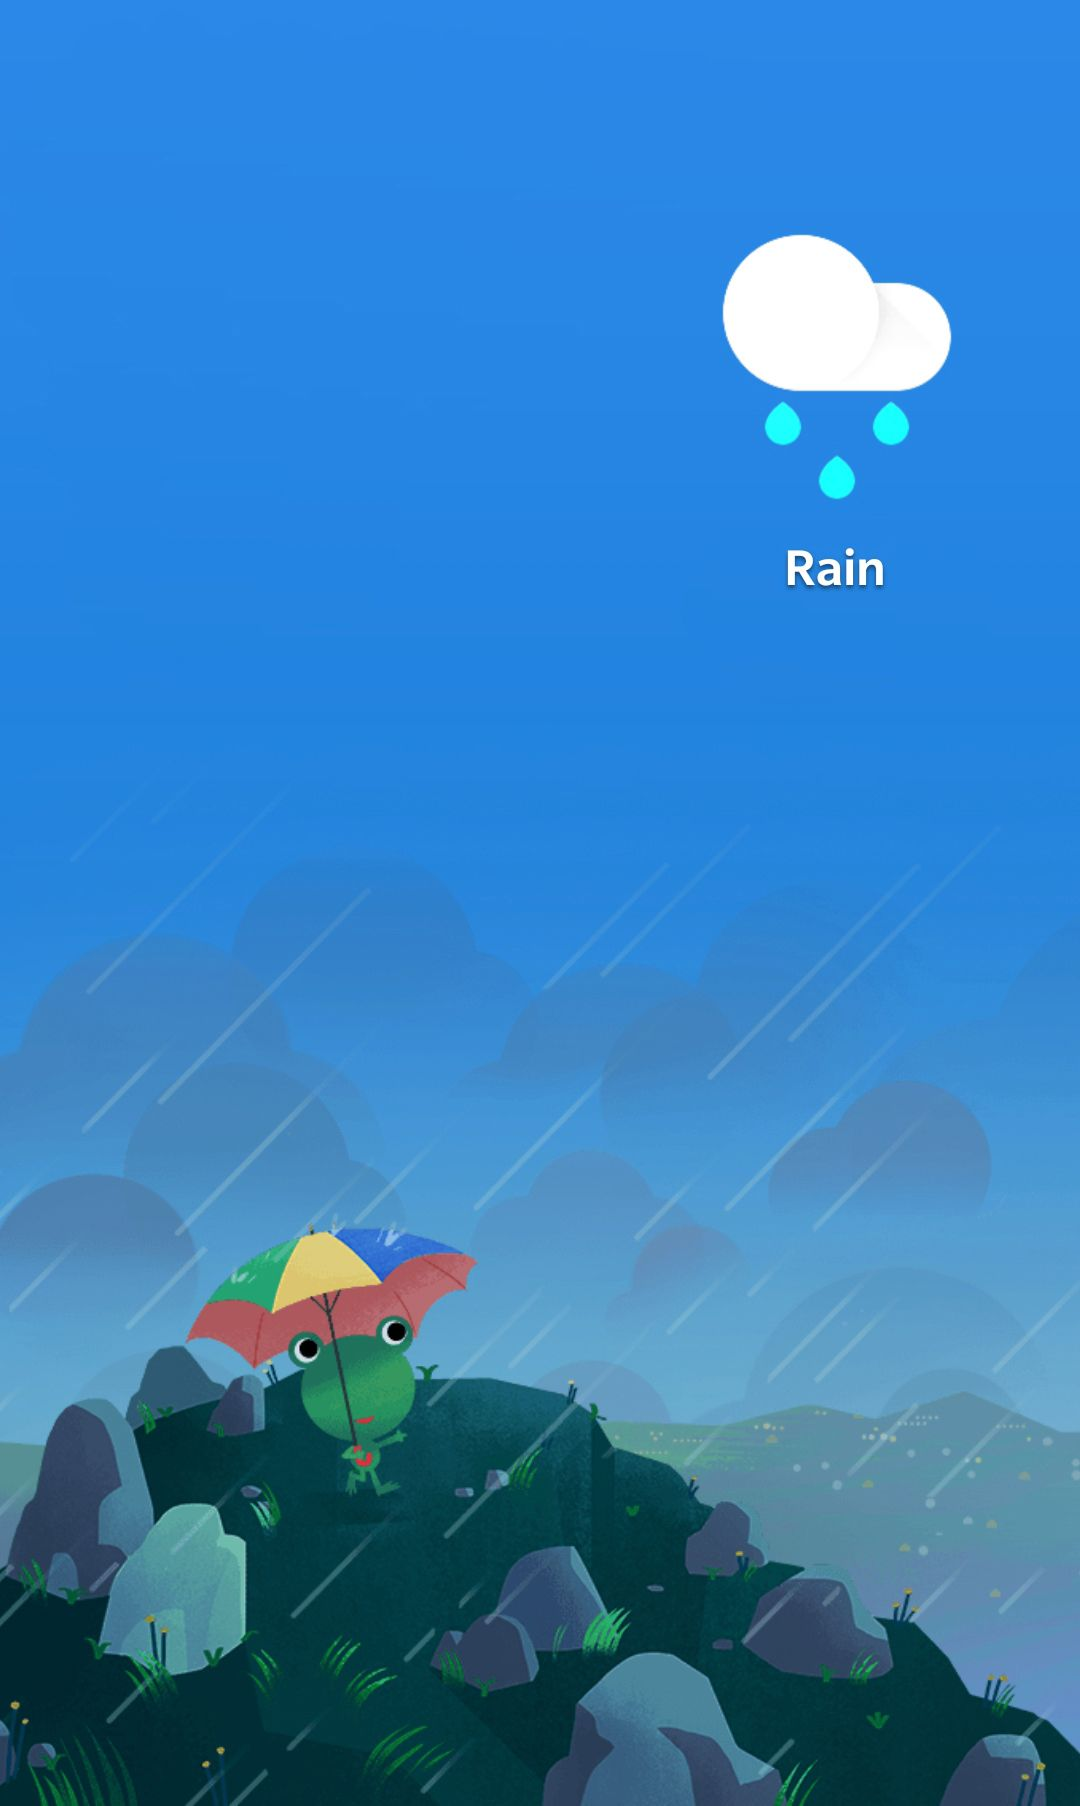 Google/Android weather frog rain Google weather, Frog